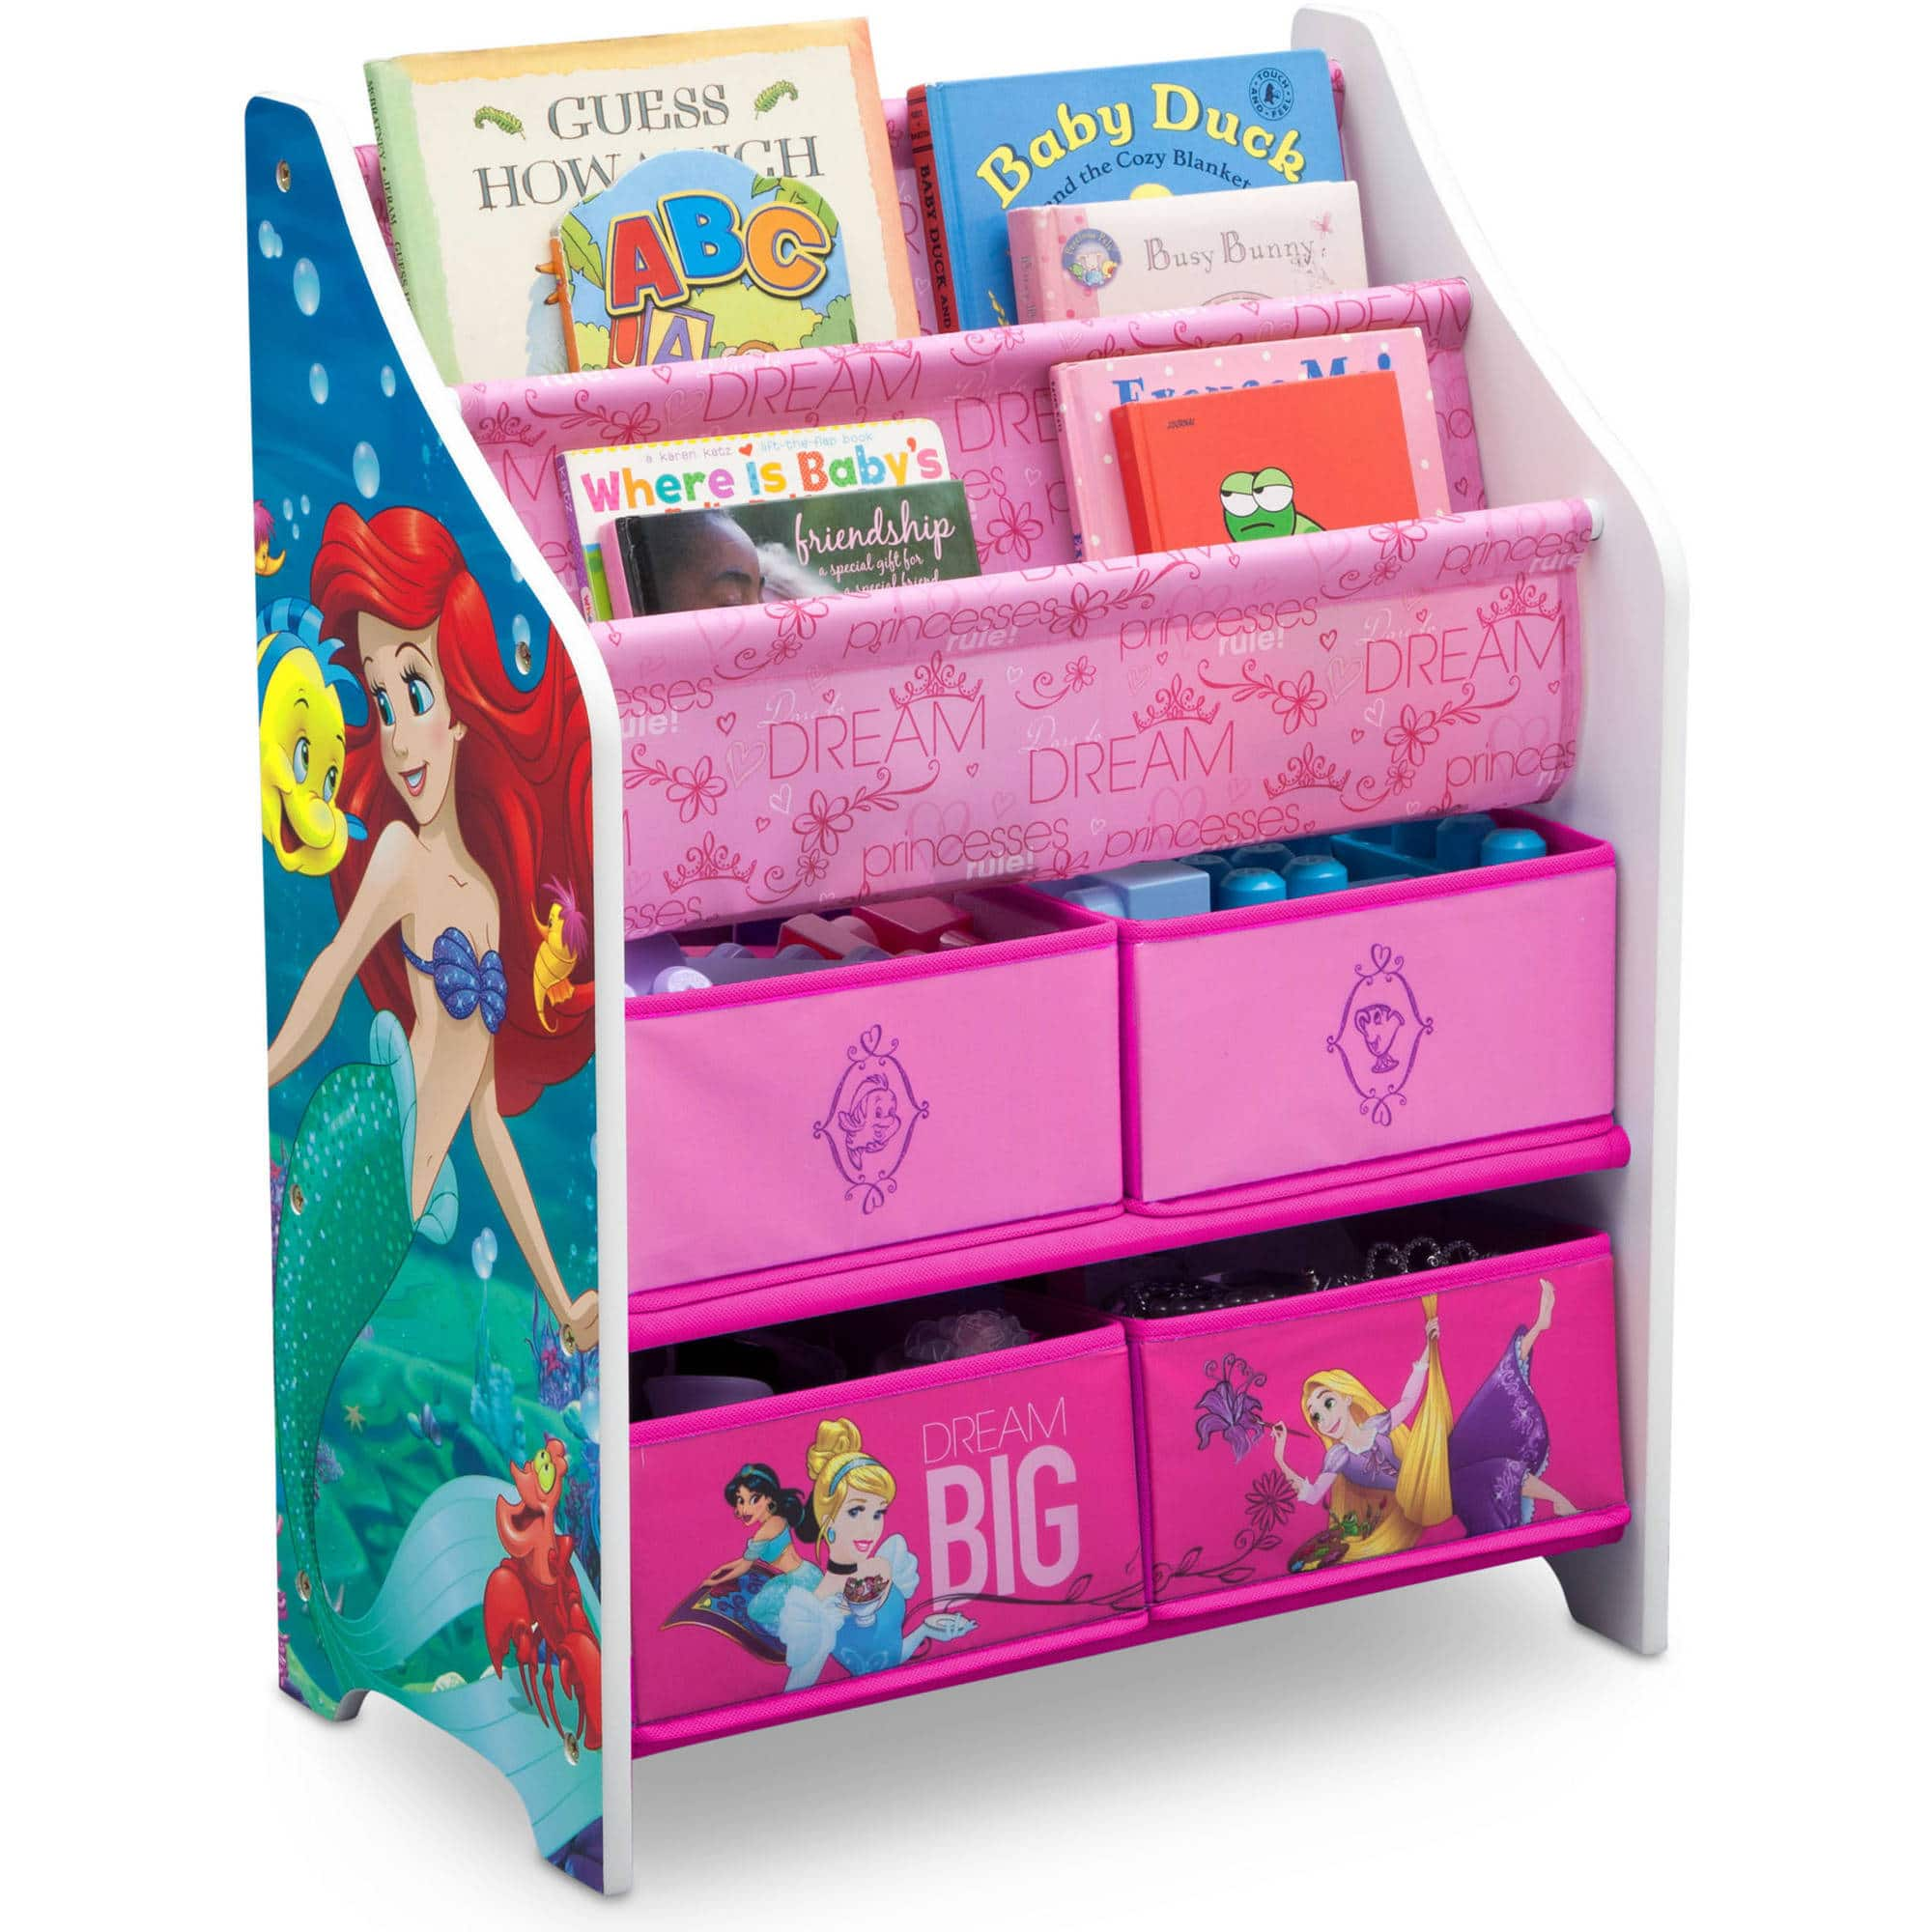 Disney Princess Book & Toy Organizer by Delta Children $20 + free pickup at Walmart